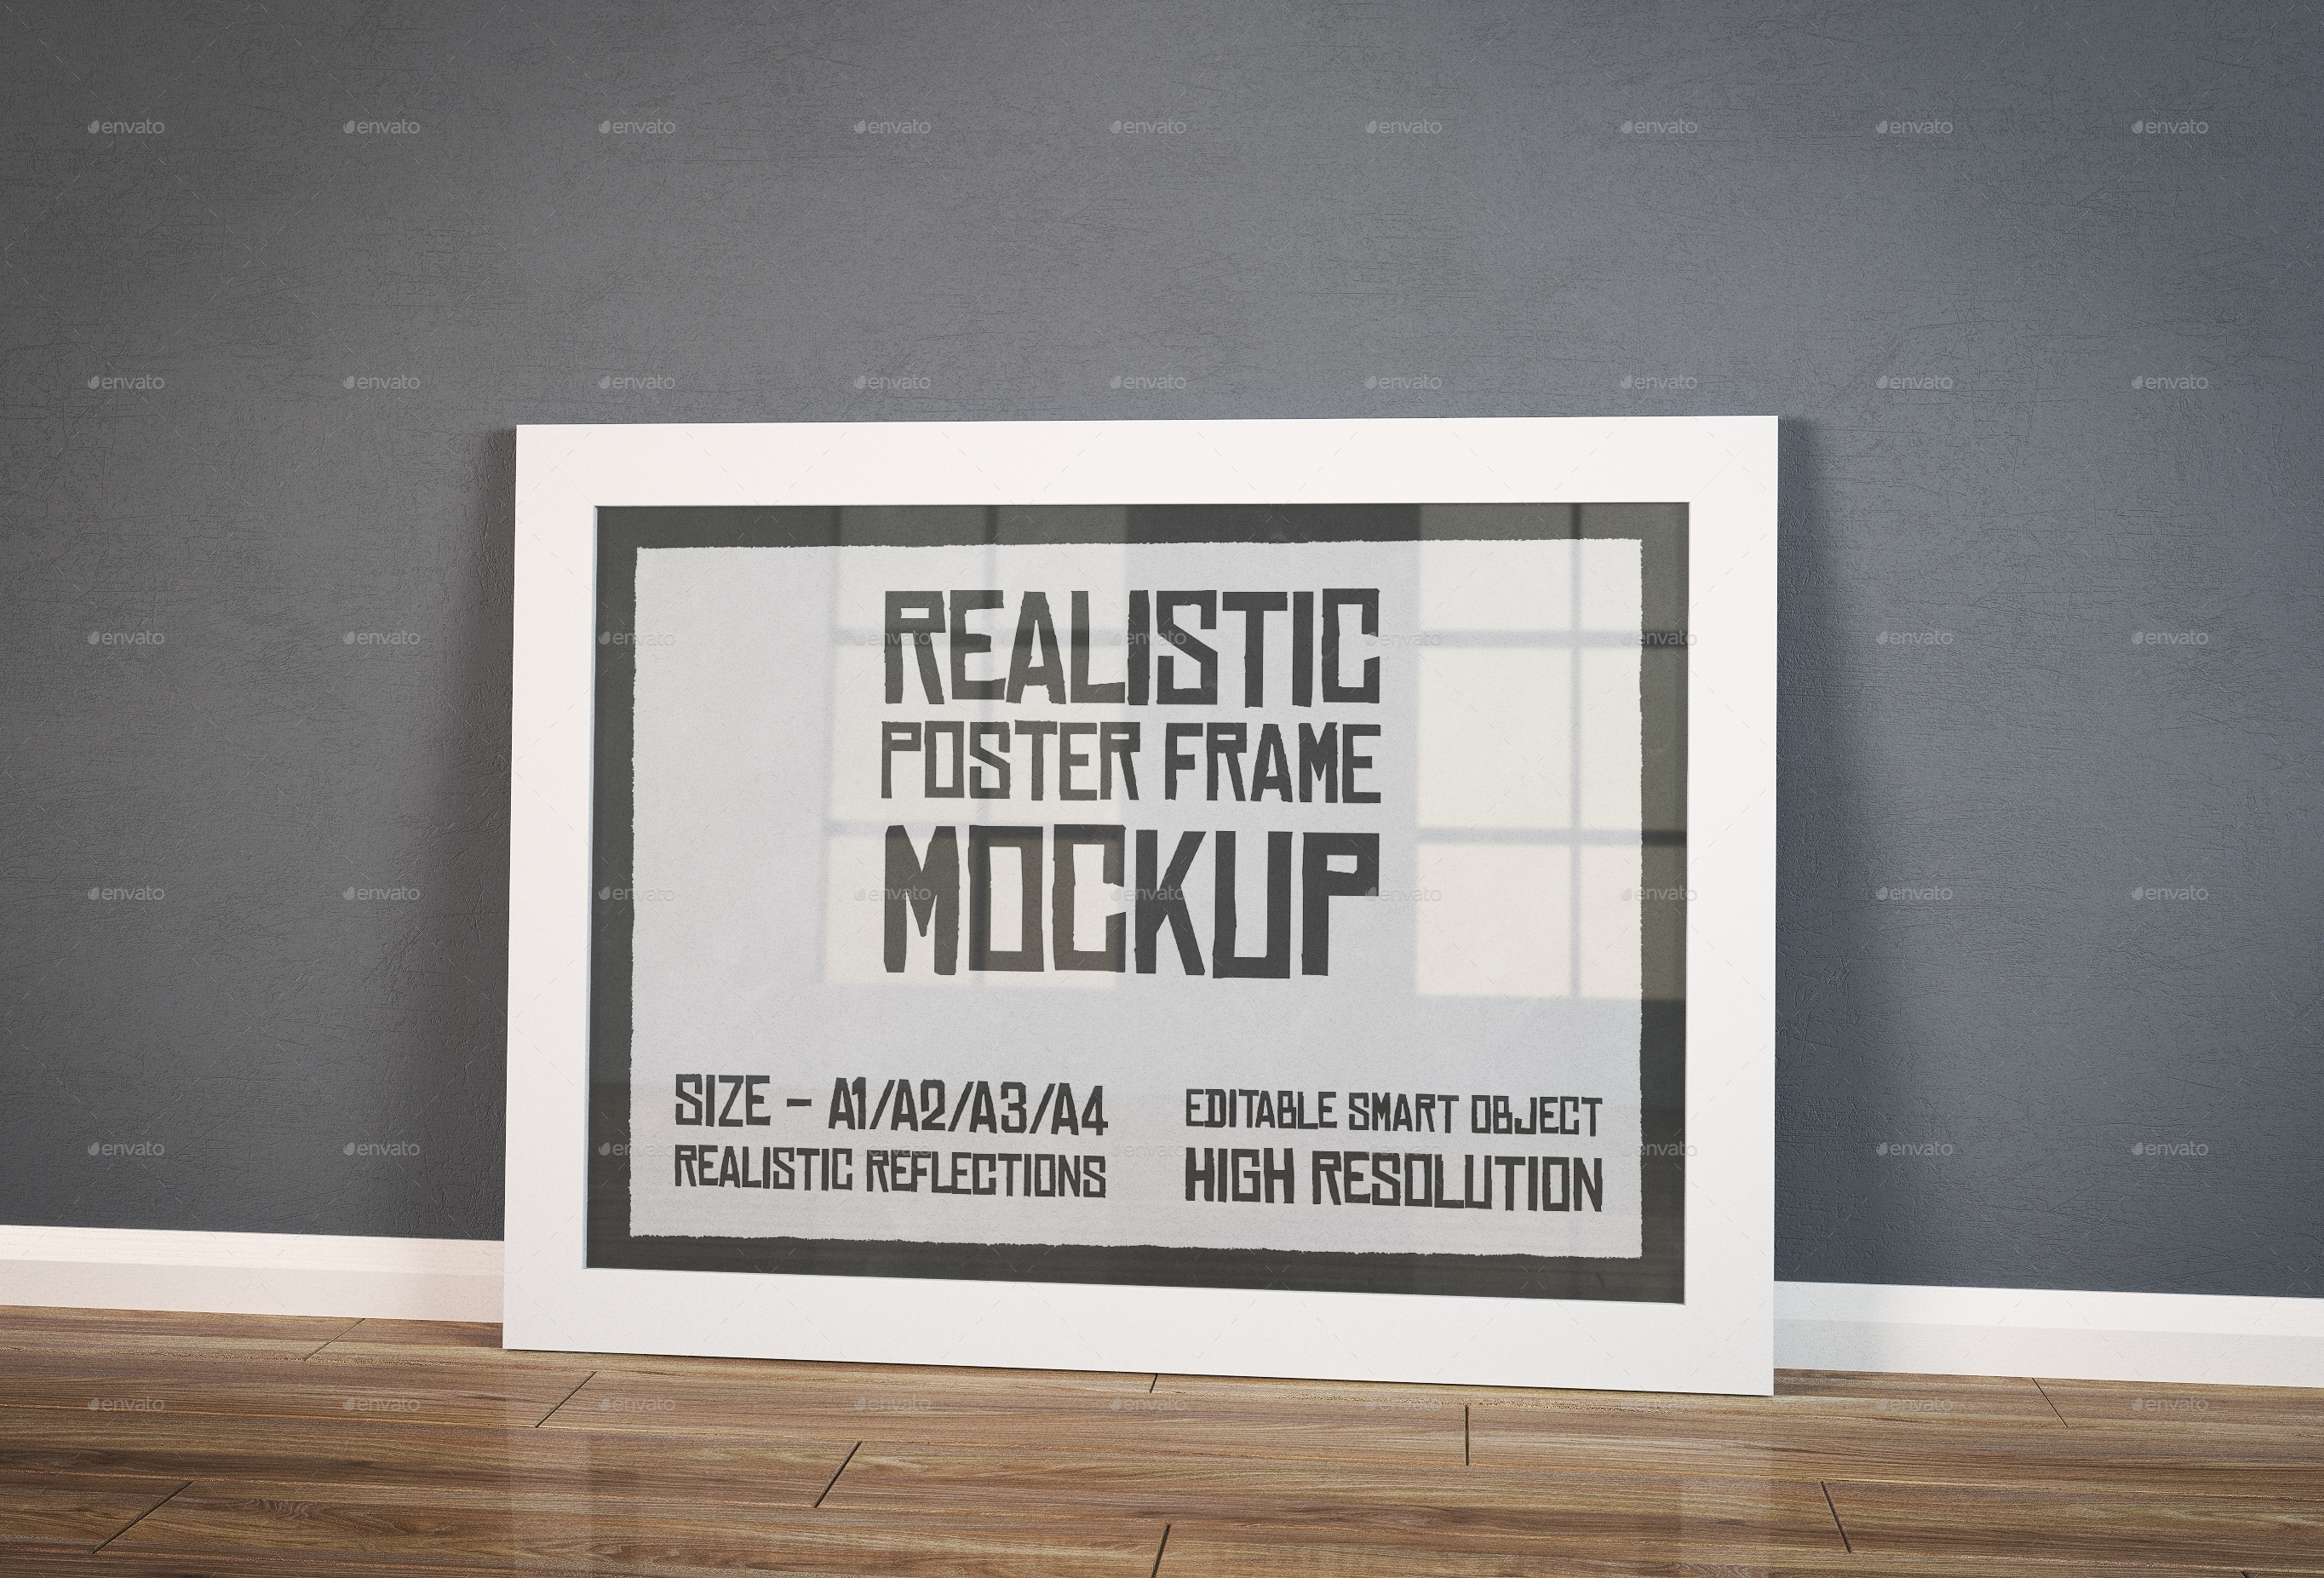 Realistic Poster Frame Mockup by Stuffx | GraphicRiver